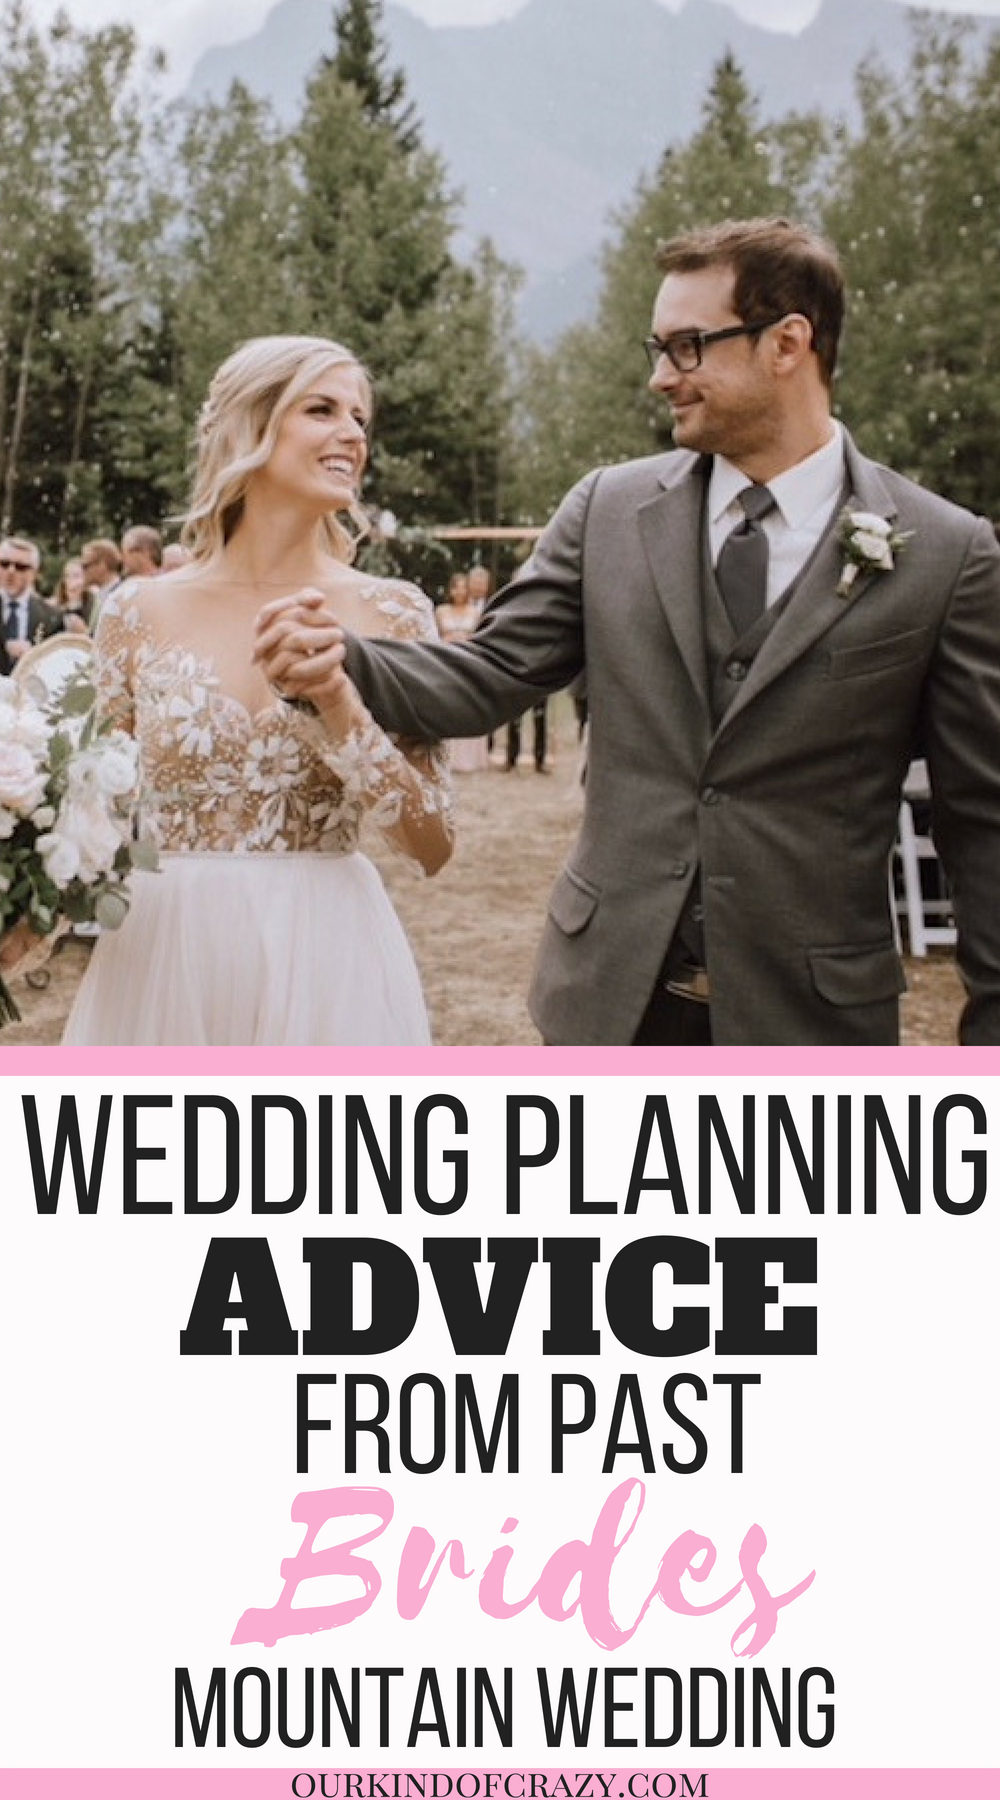 Wedding Planning advice from past brides. Mountain Wedding Planning. Brides Advice for the new bride-to-be.